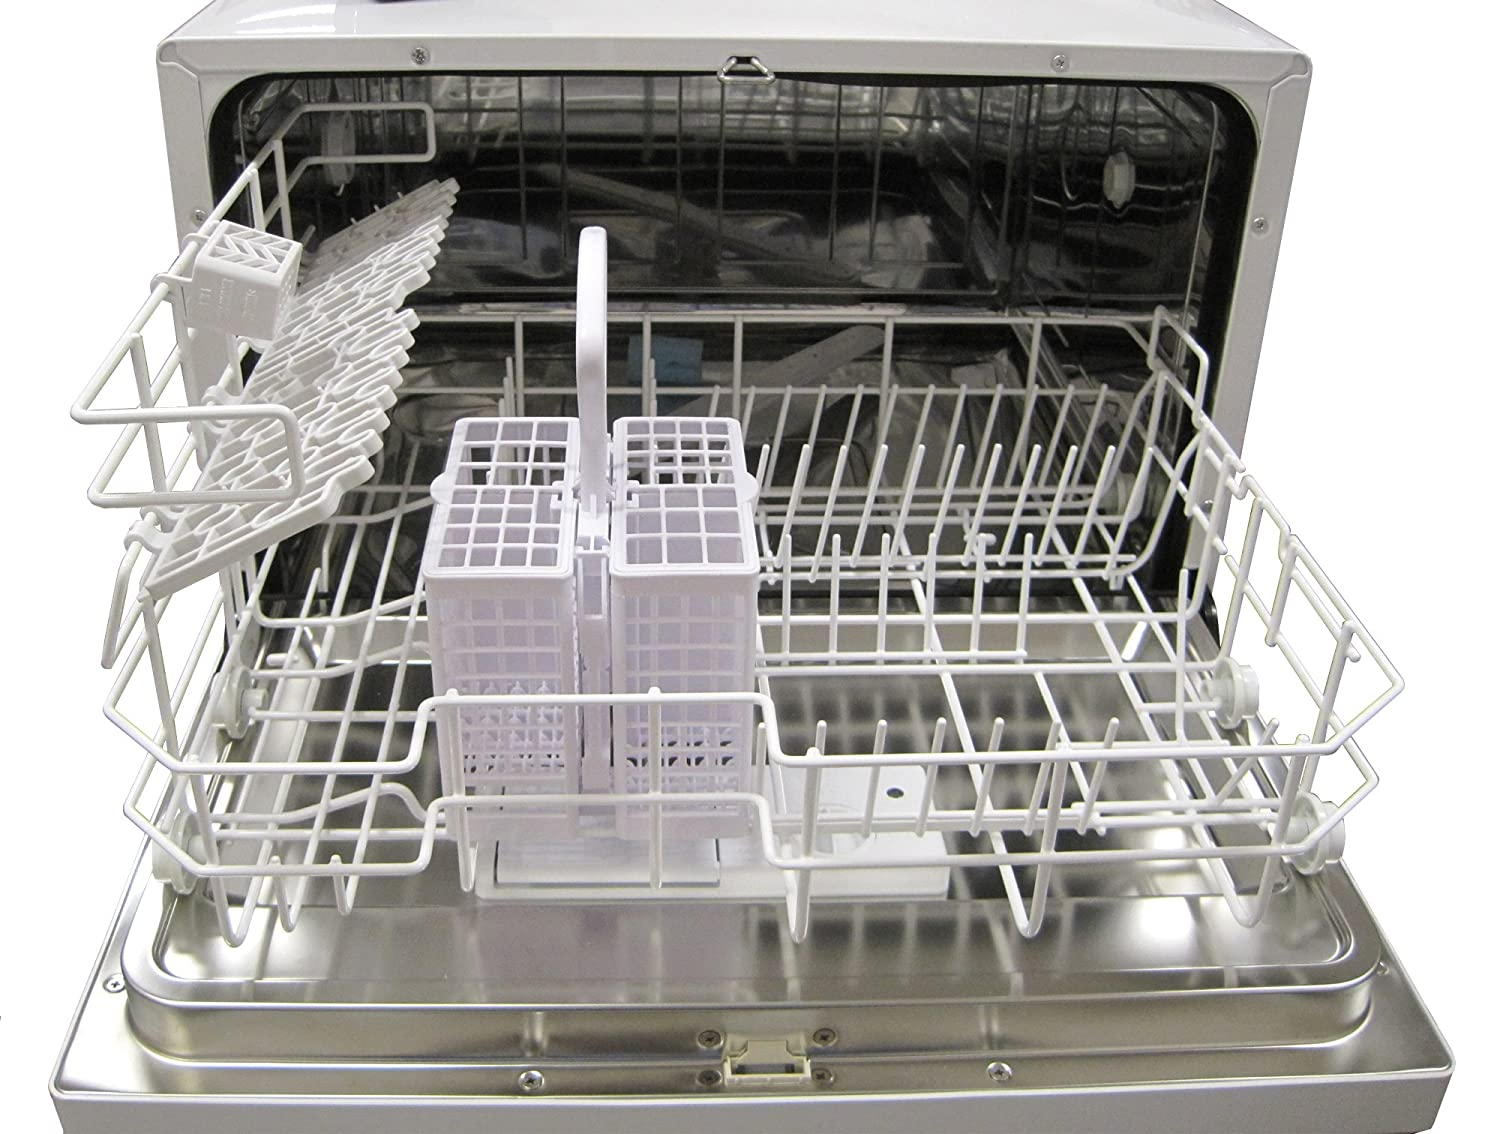 Countertop Dishwasher Mount : Image Collection How To Install A Countertop Dishwasher - Solution for ...